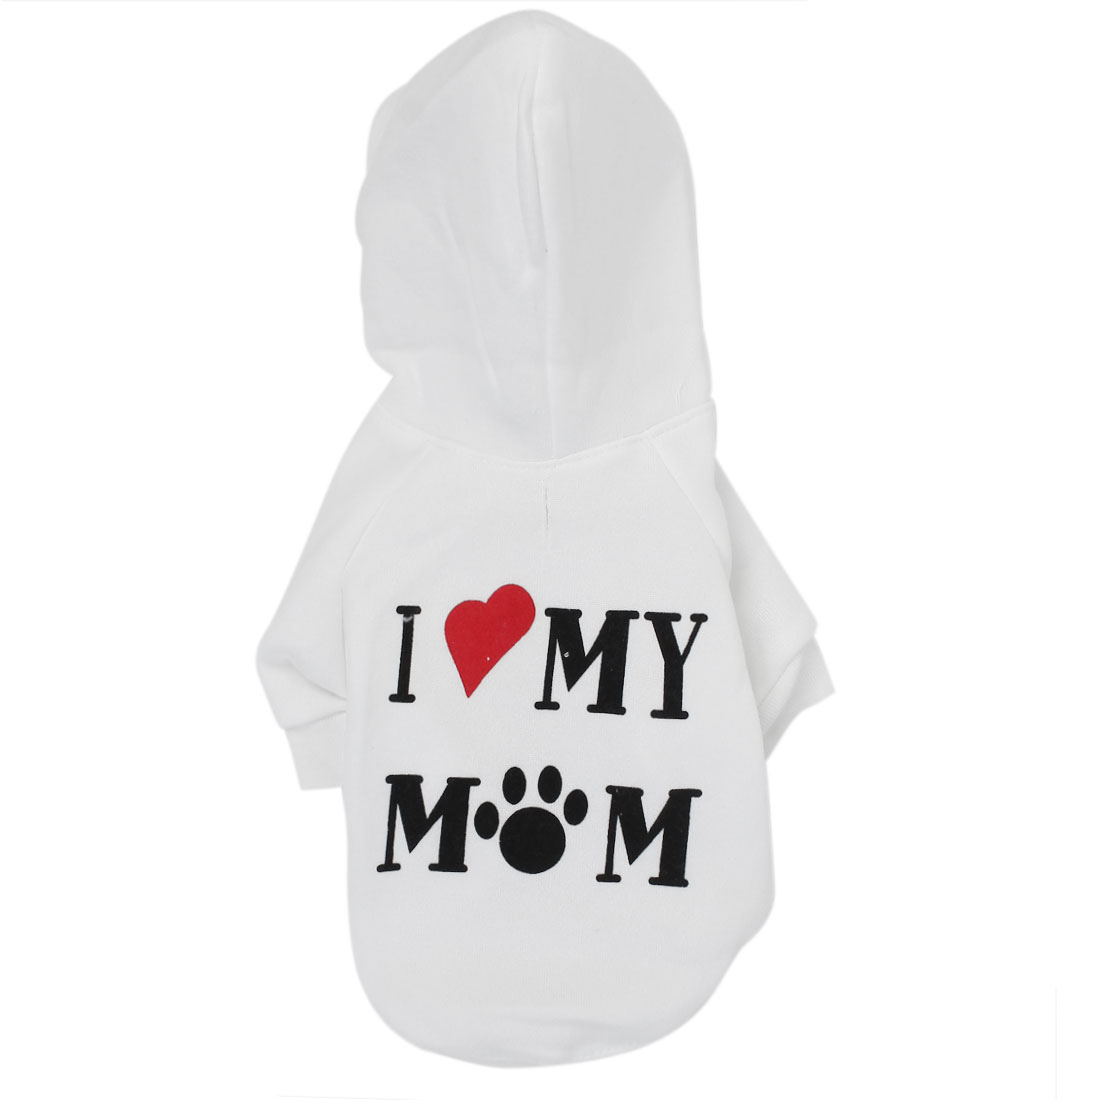 I LOVE MOM Pet Cat Puppy Clothes Hoodie Warm Coat Apparel Costume White Size XS